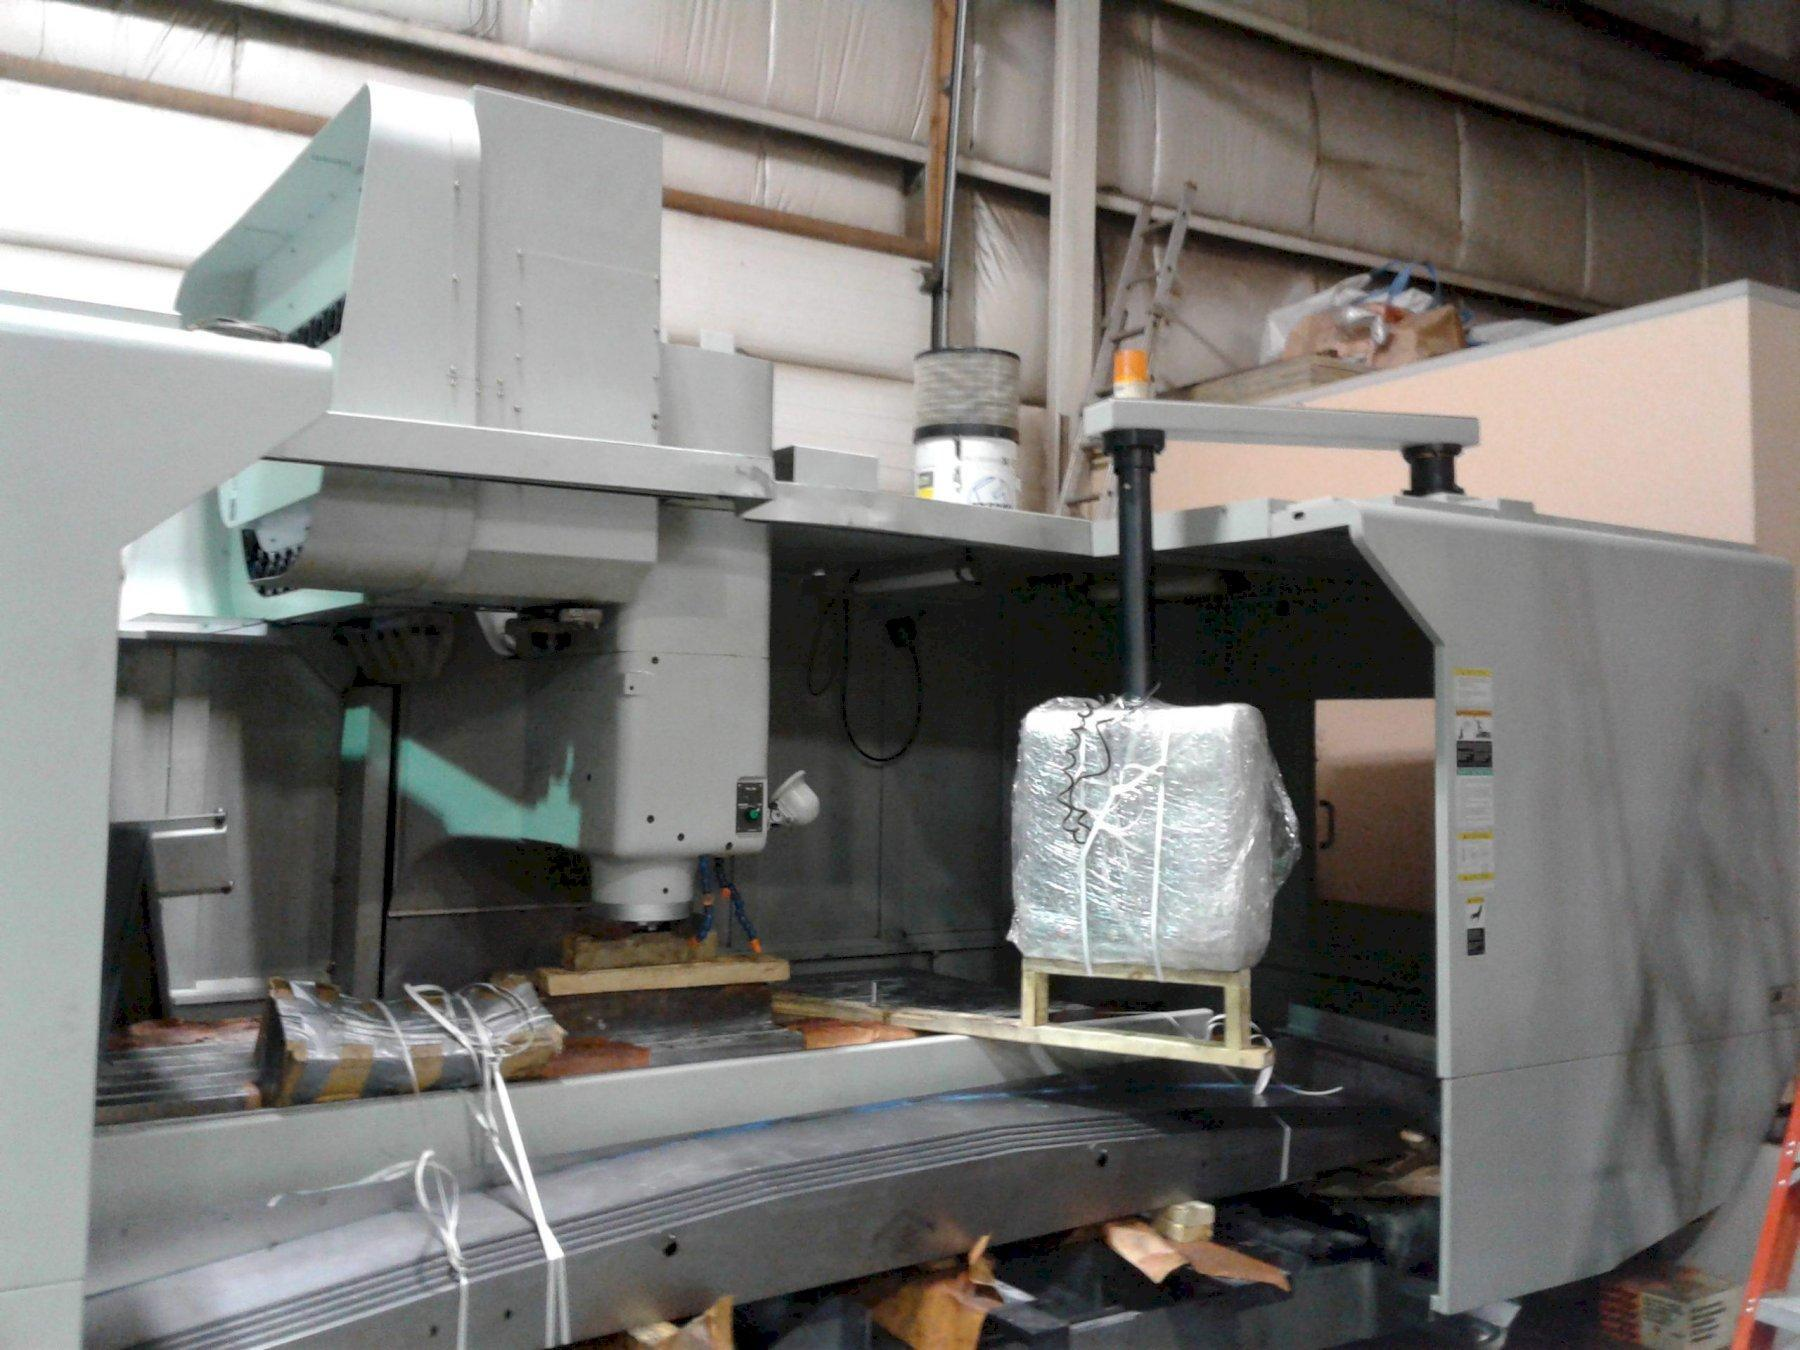 Hyundai Kia VX 950M CNC Vertical Machining Center